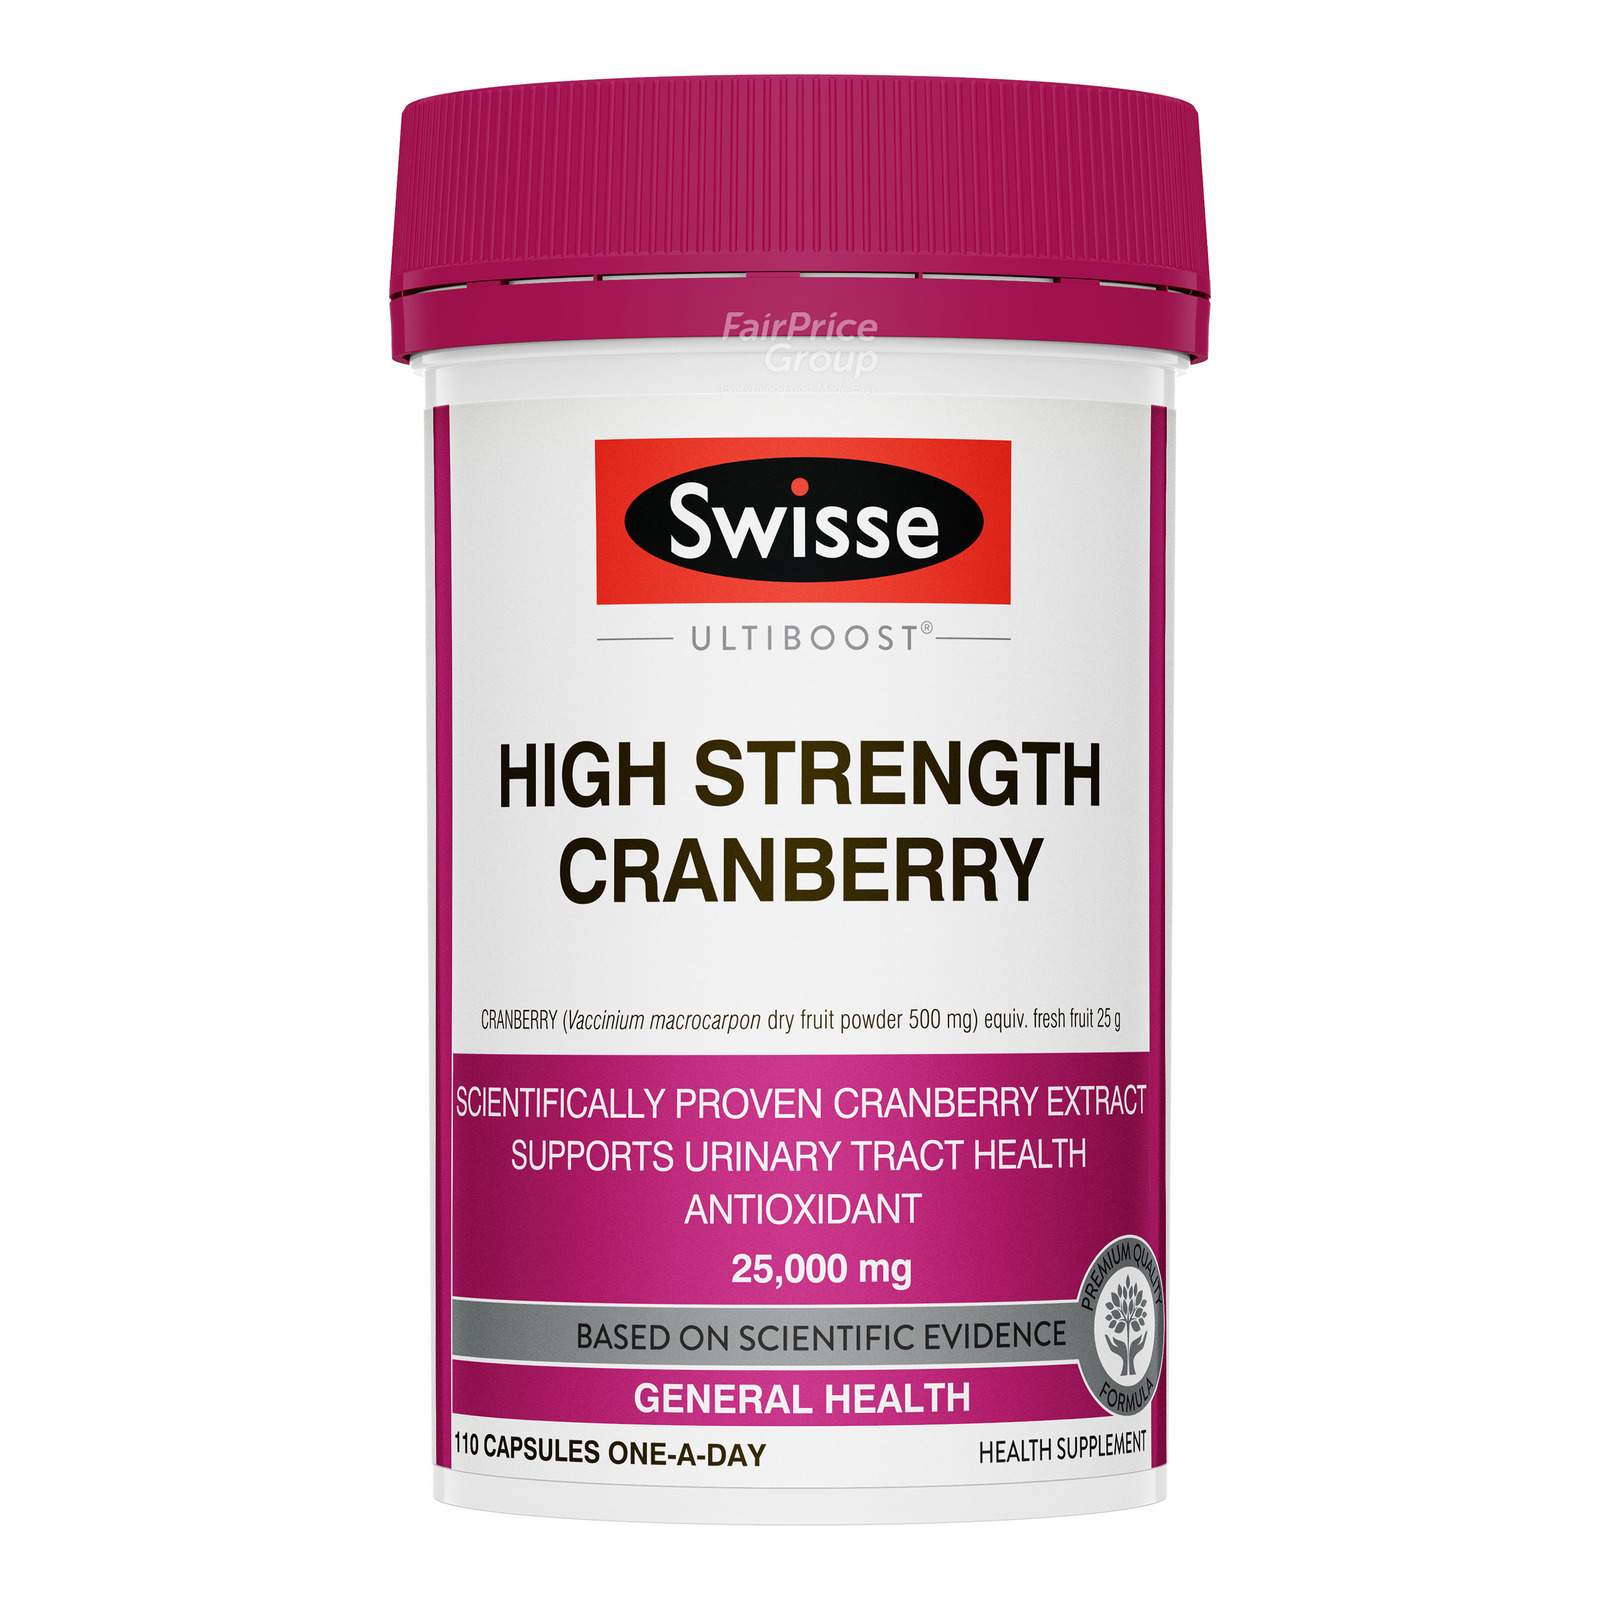 Swisse Supplement Capsules - High Strength Cranberry